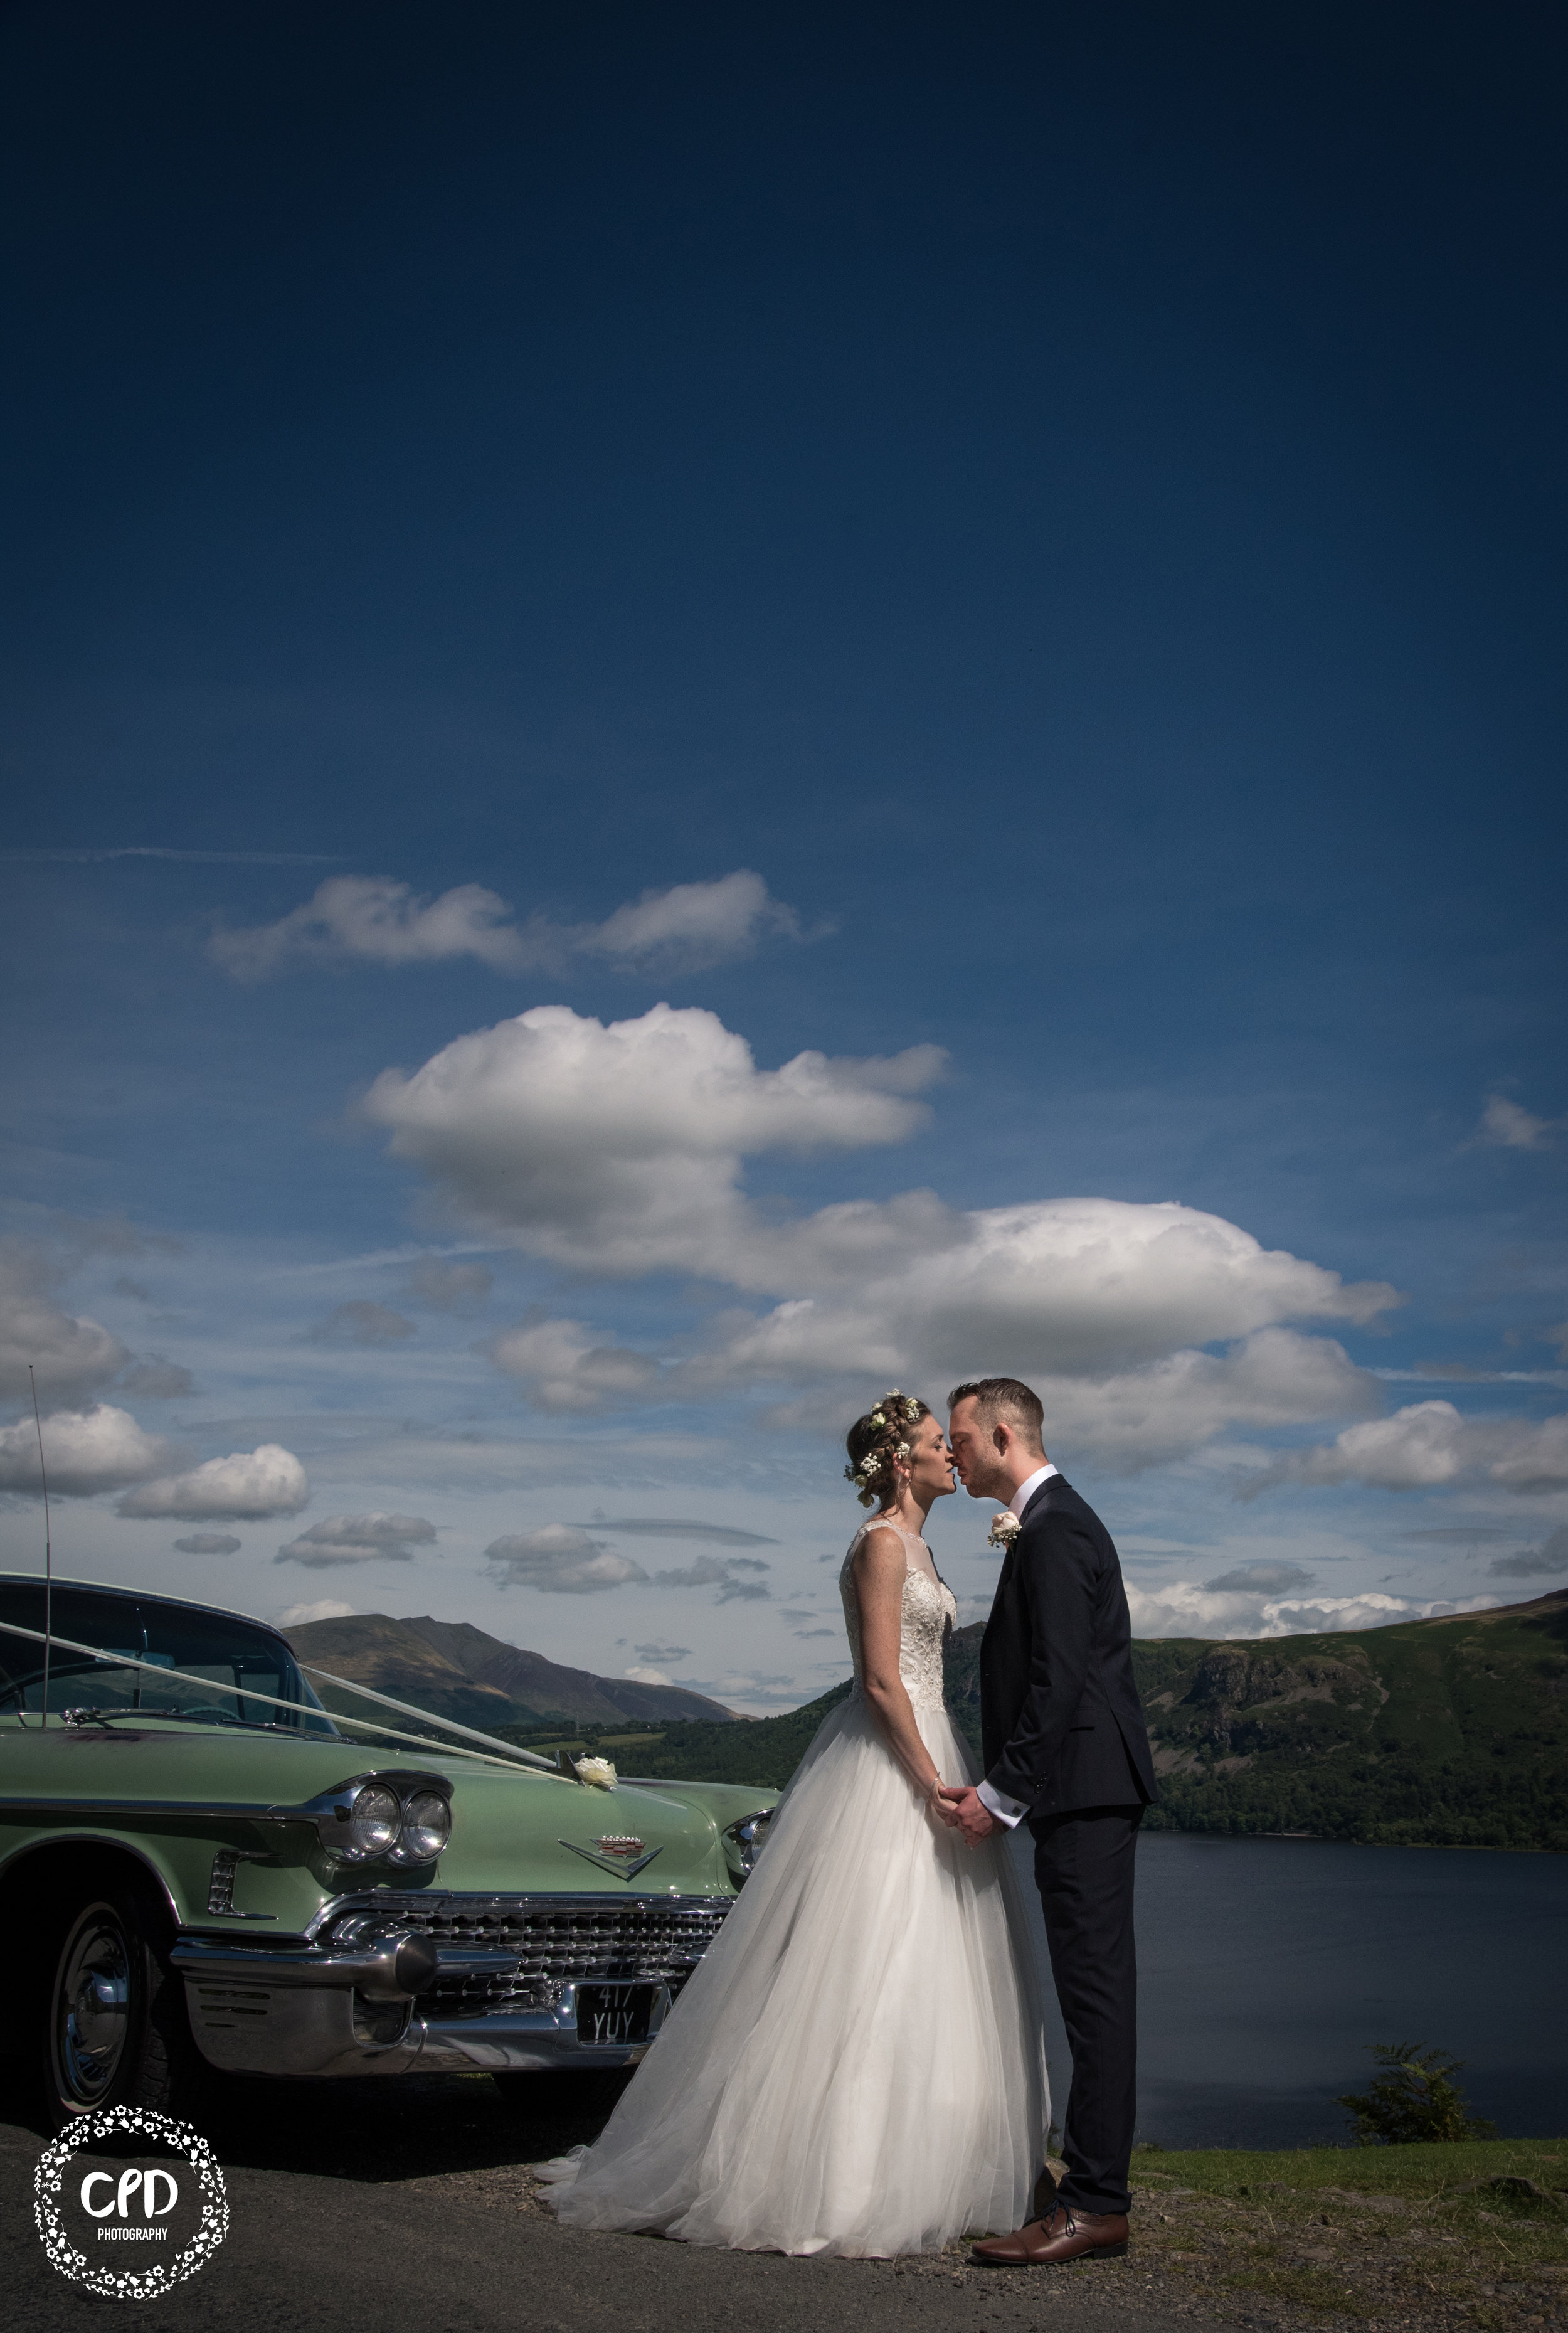 Bride and Groom Kissing in front of the cadillac